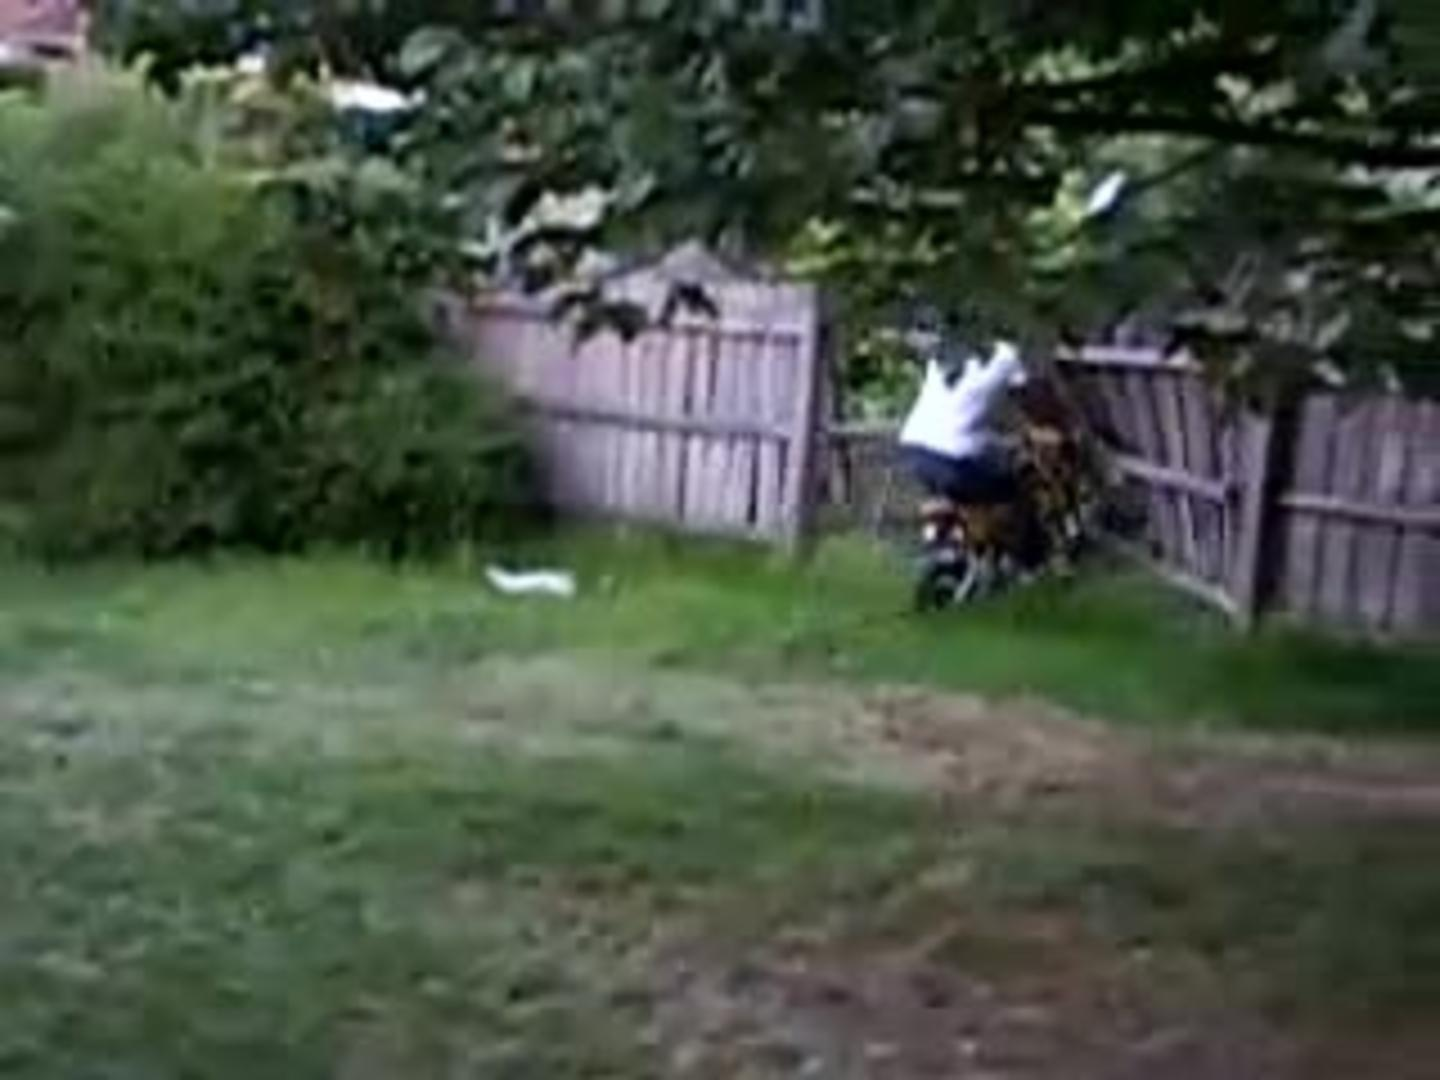 mom rides dirt bike and crashes into fence jukin media